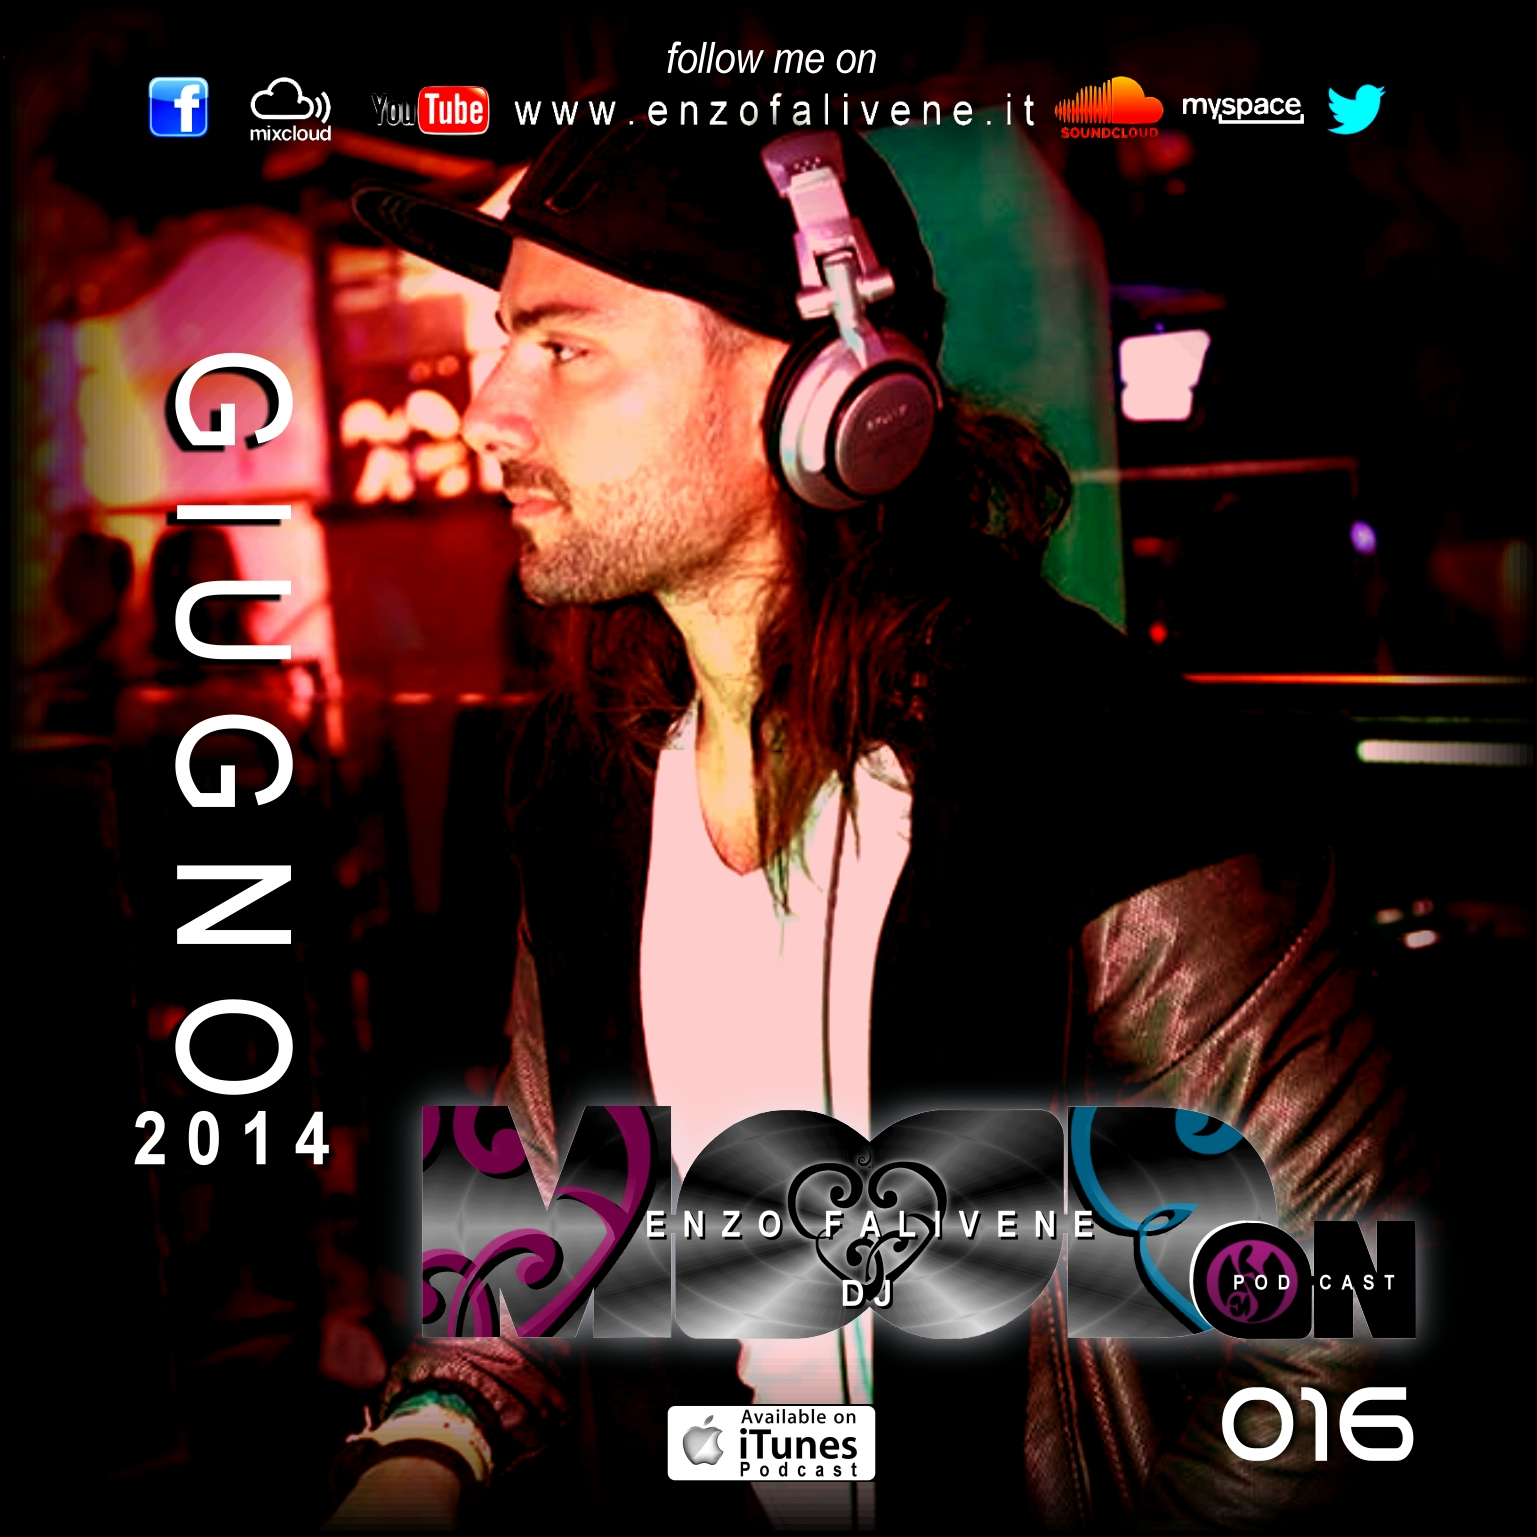 Dj Enzo Falivene - Mood On 016 Giugno 2014